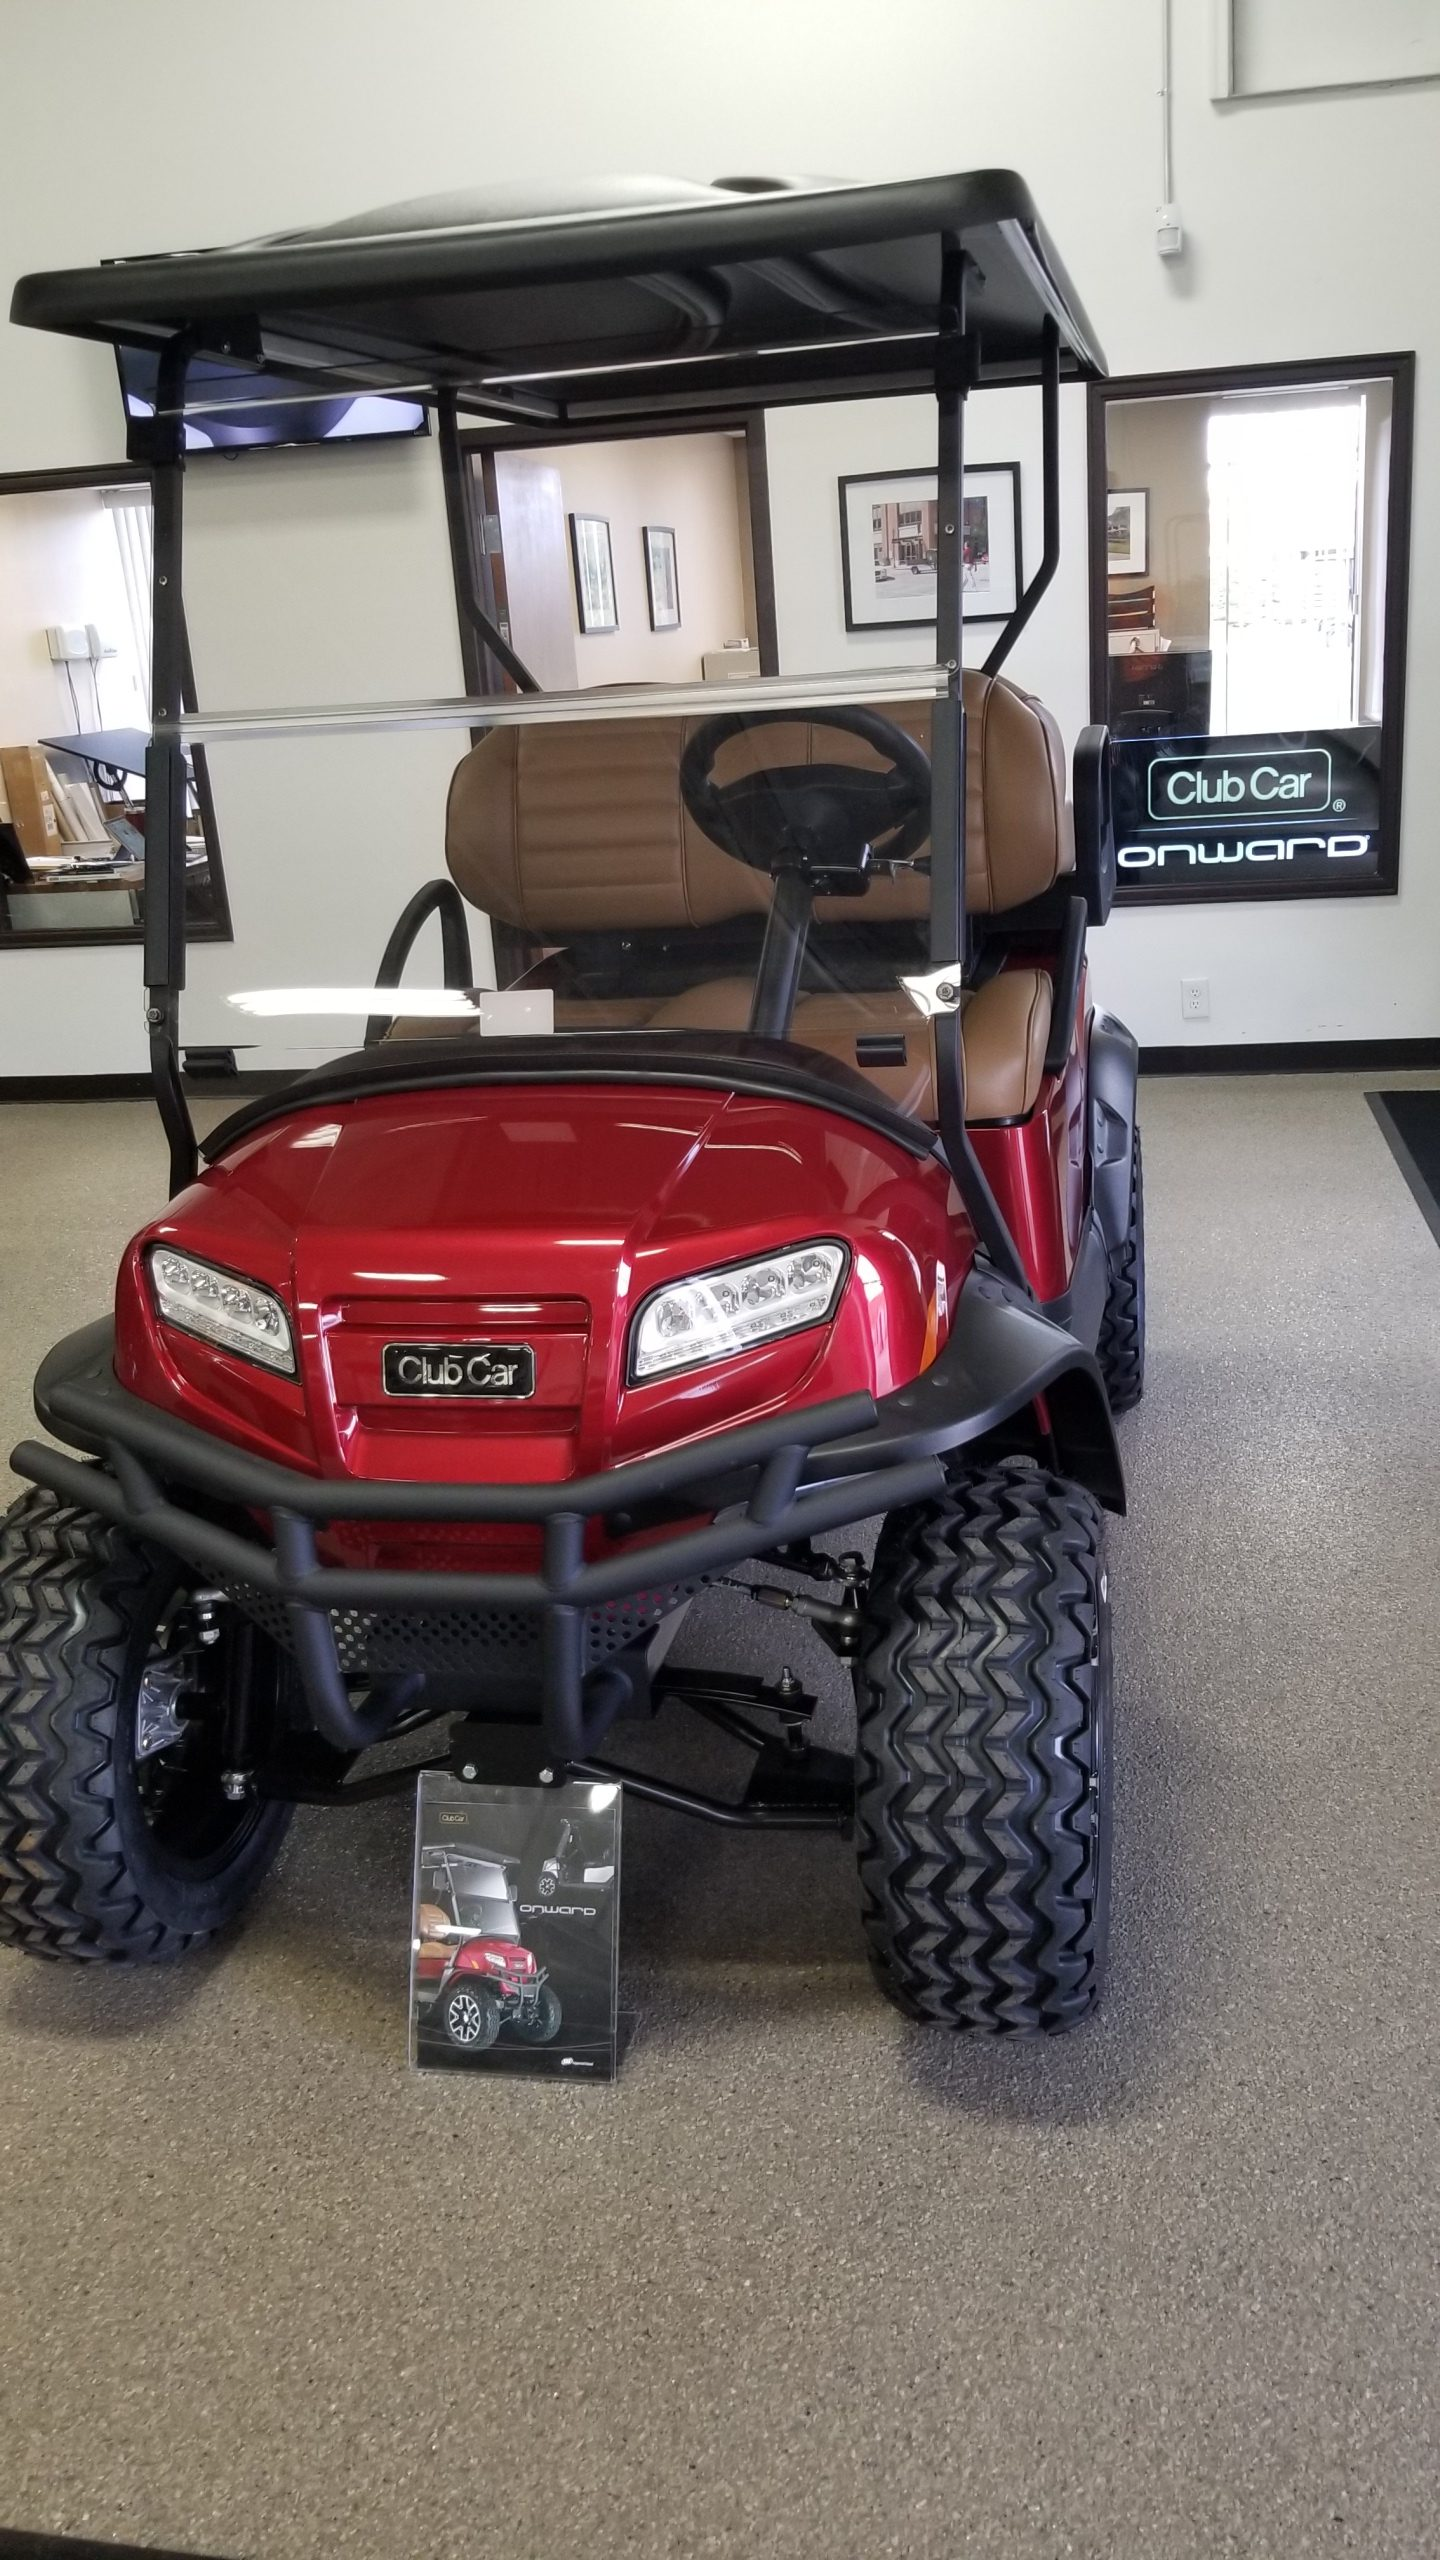 Featured Image for 2019 Club Car Onward Lifted 4 Passenger Gas